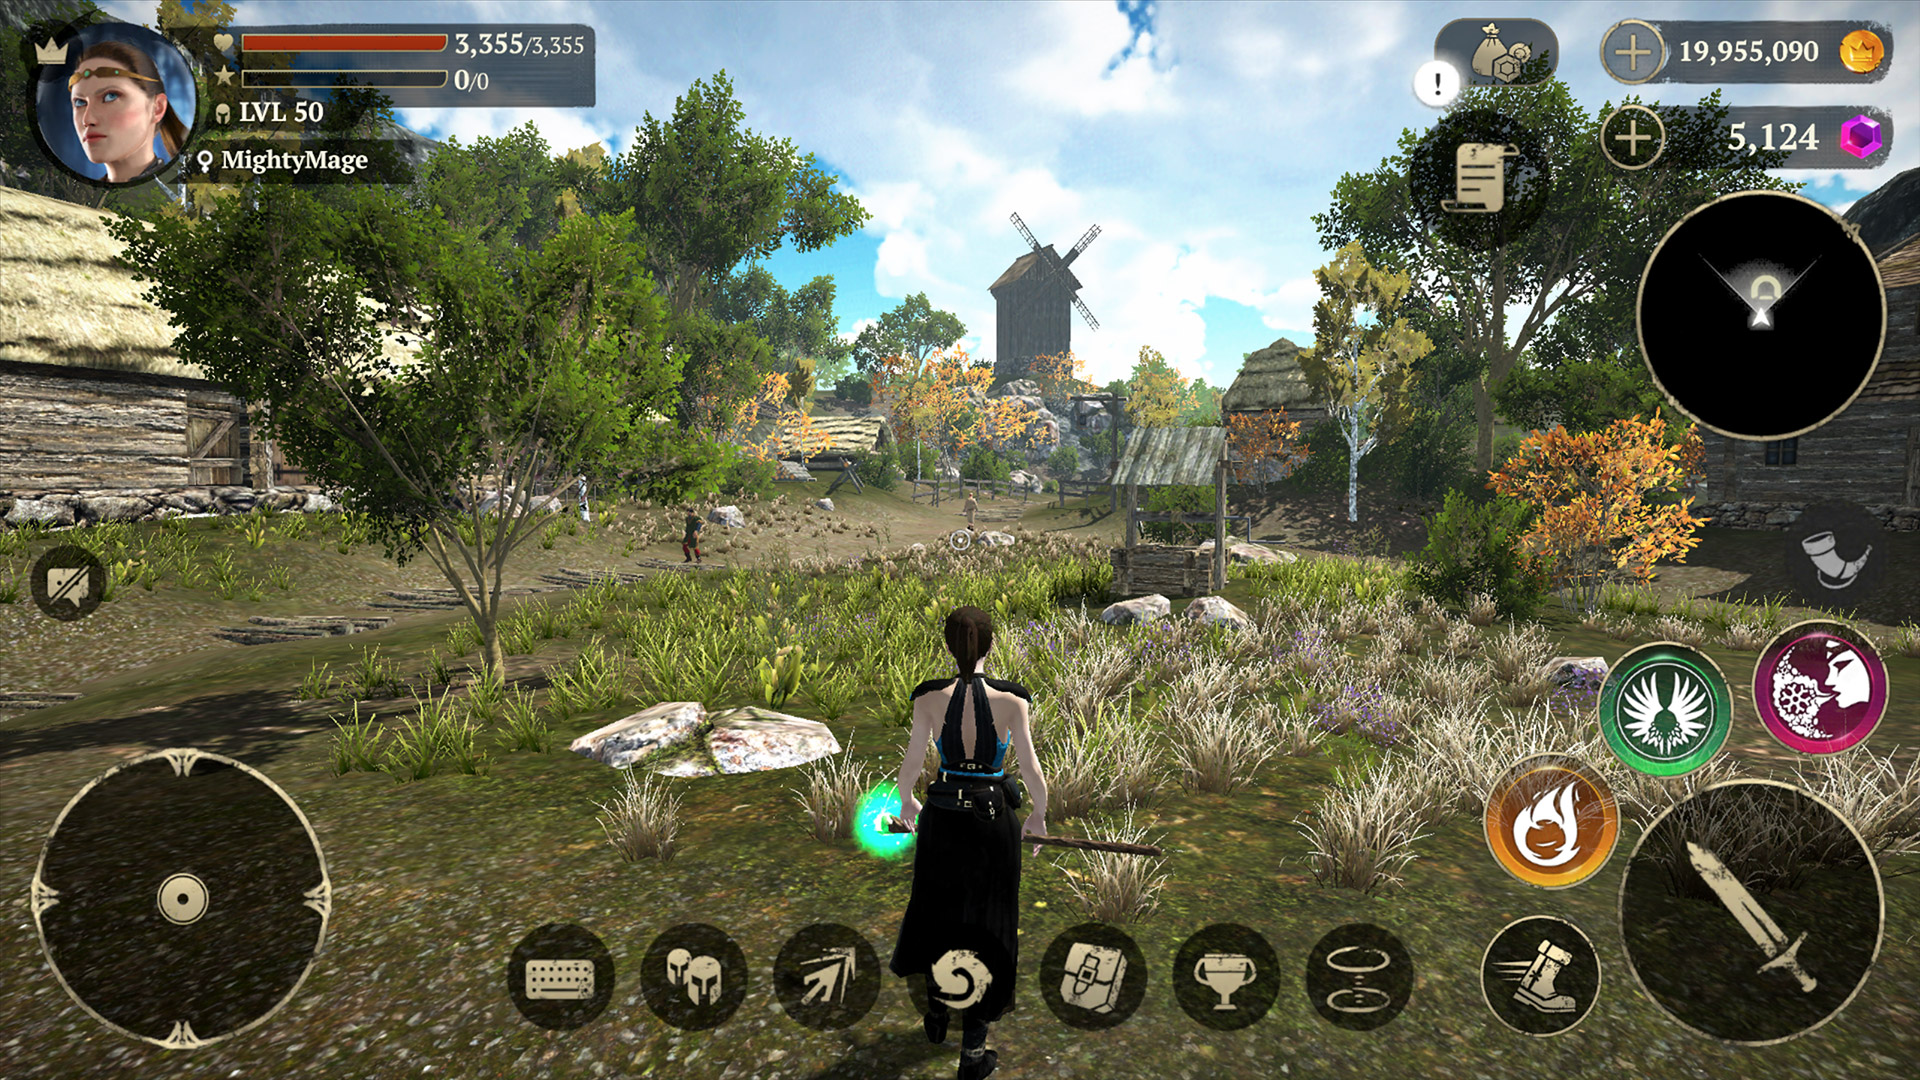 Top-tier multiplayer fantasy RPG for mobile